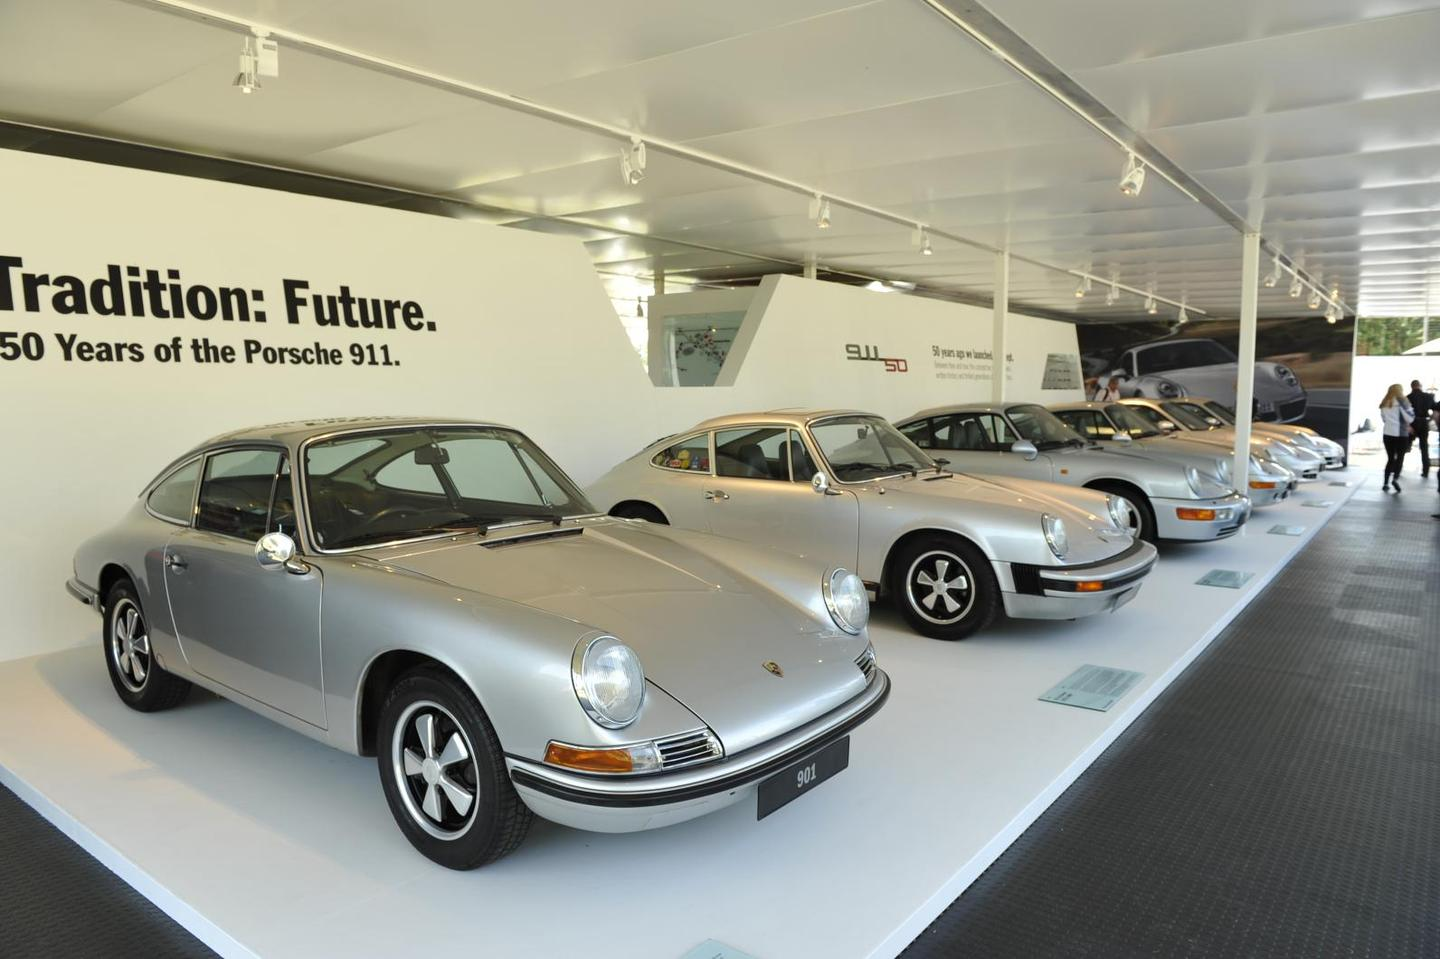 Porsche celebrates 50 years of the 911 at the Festival of Speed